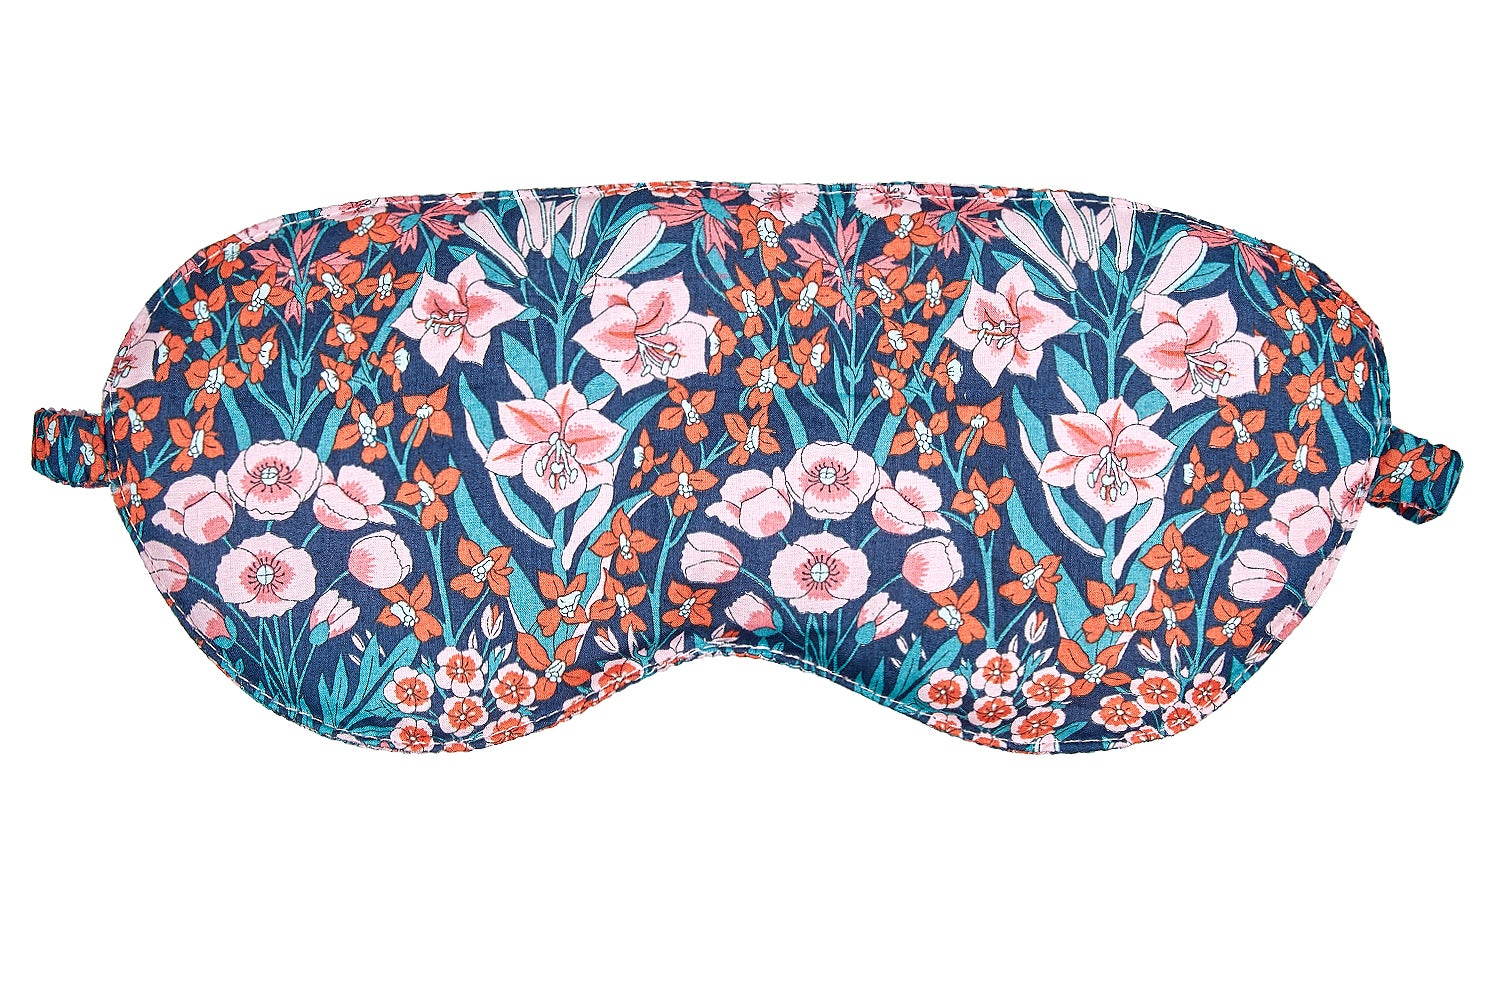 Image of Sleep mask * Mountain primerose * Red